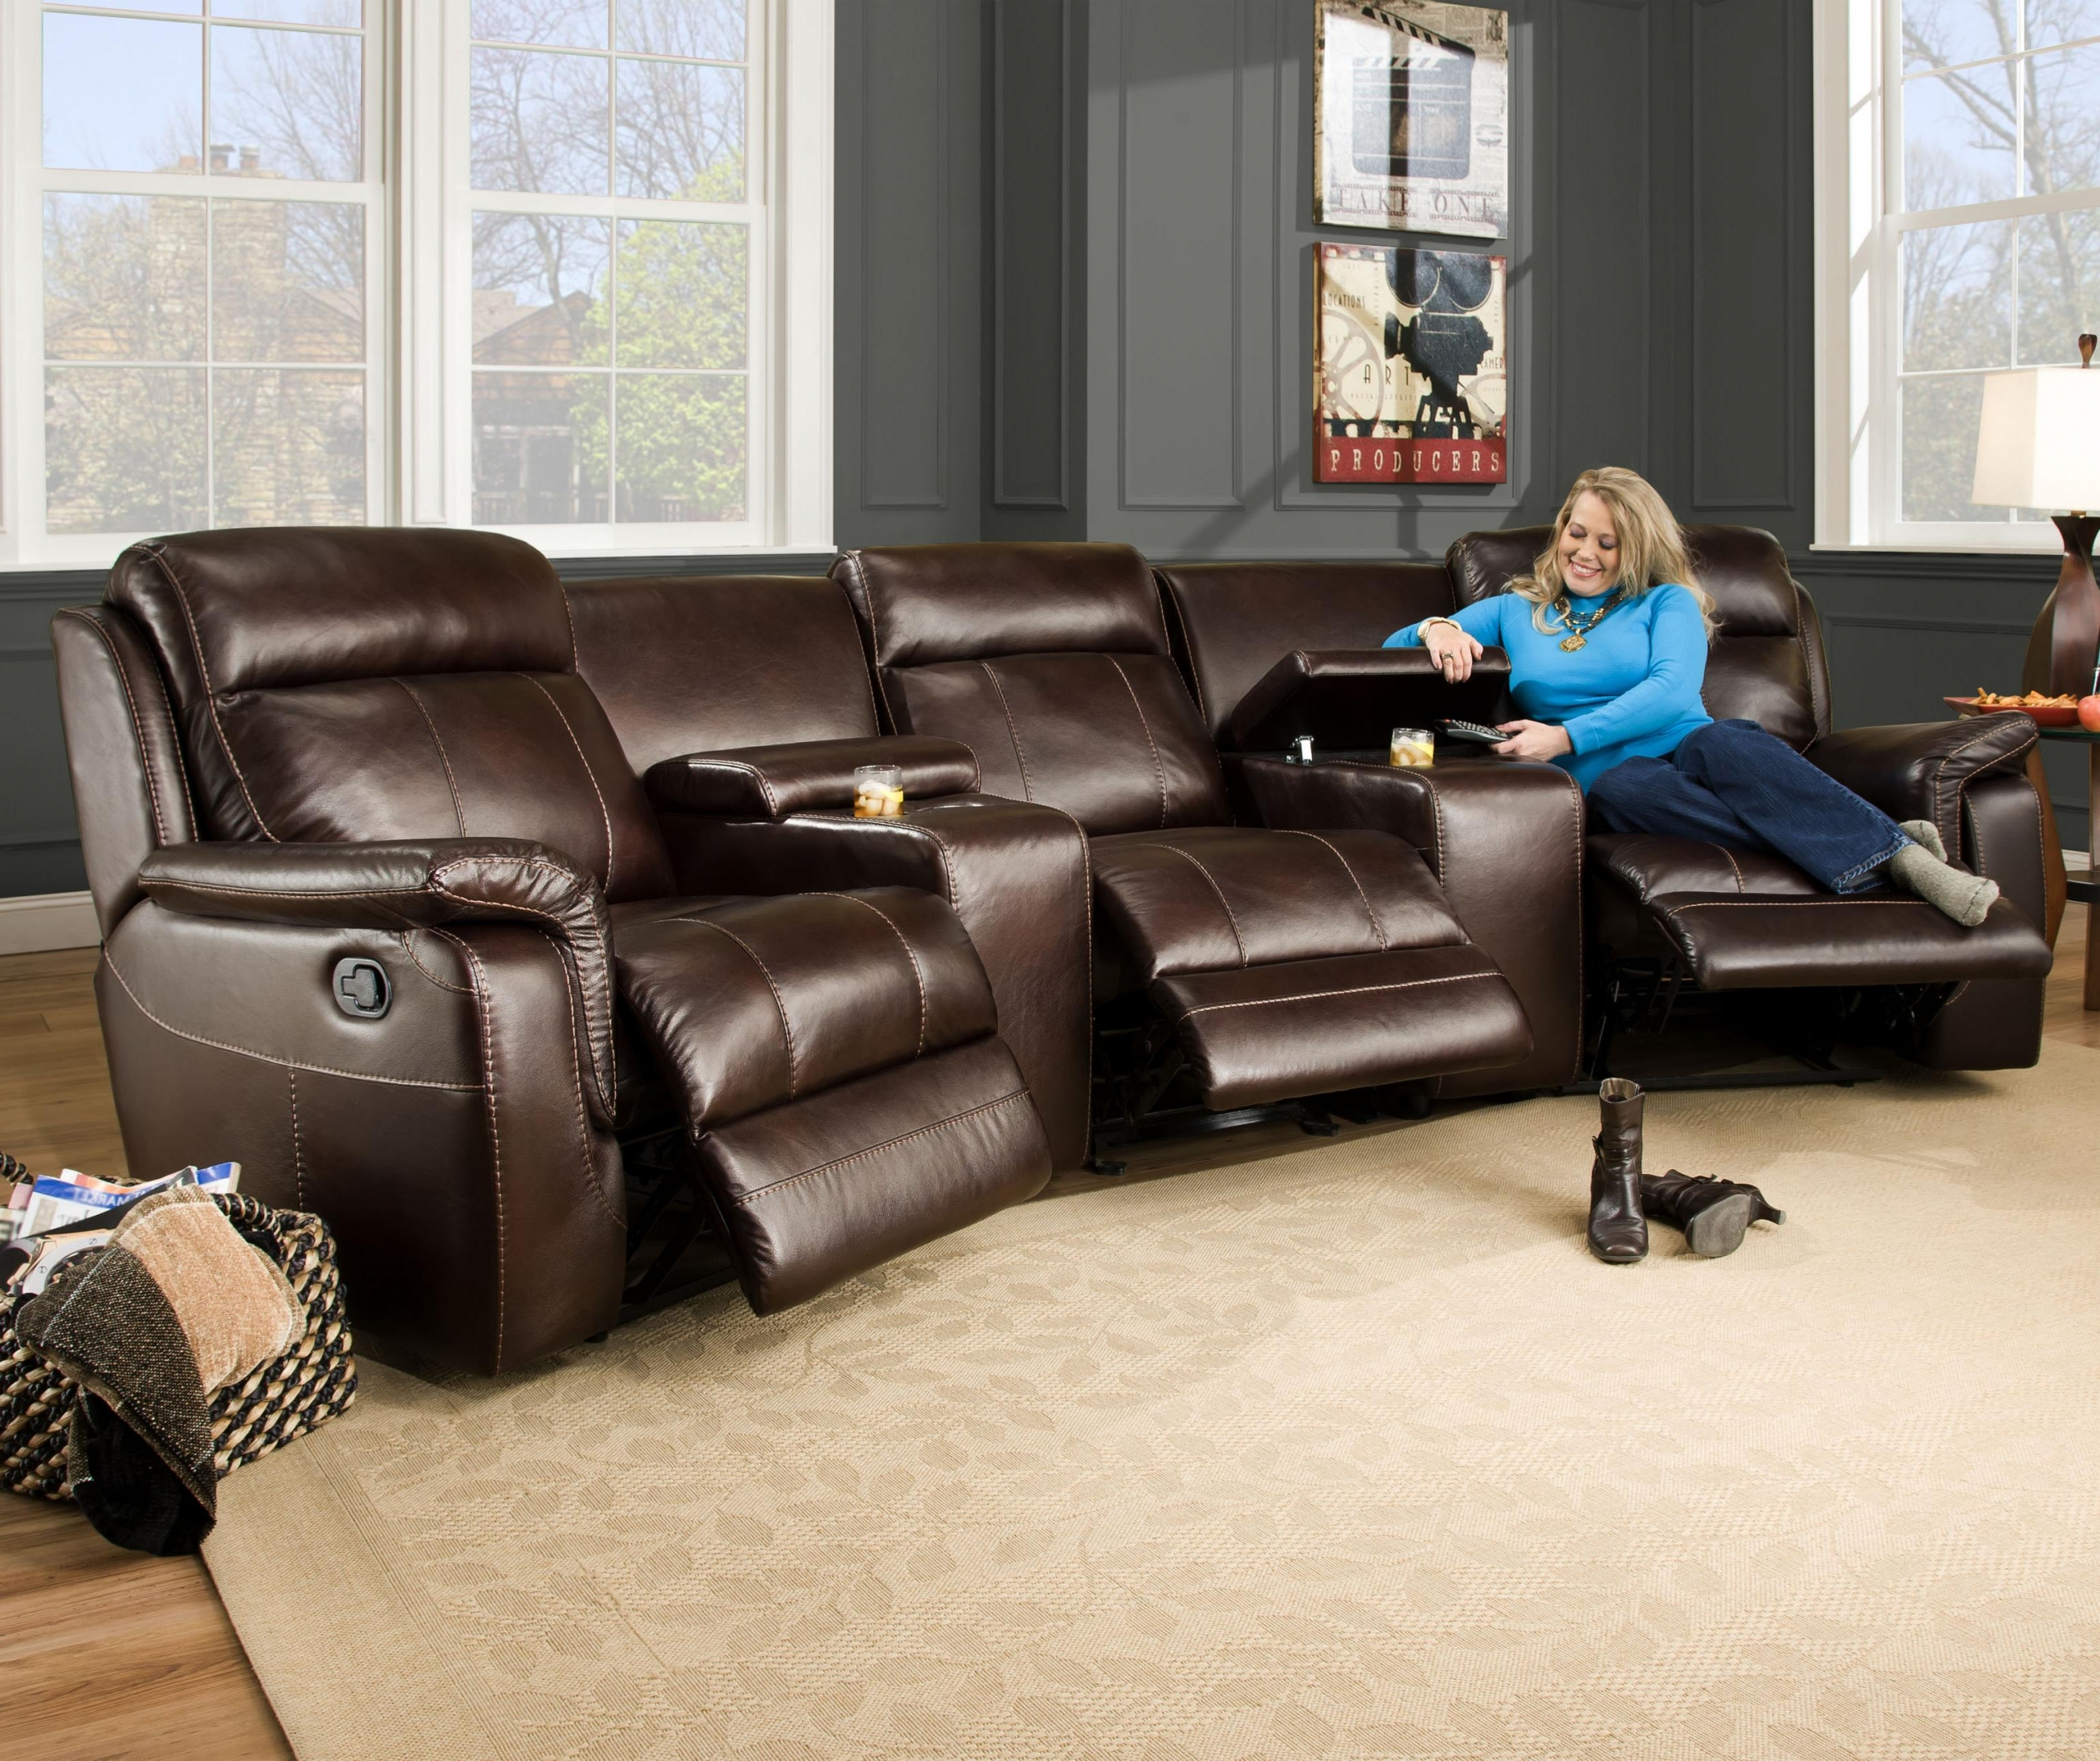 Best Quality Reclining Sofa All Information Sofa Desain Ideas With Quality Sectional Sofa (Image 4 of 15)